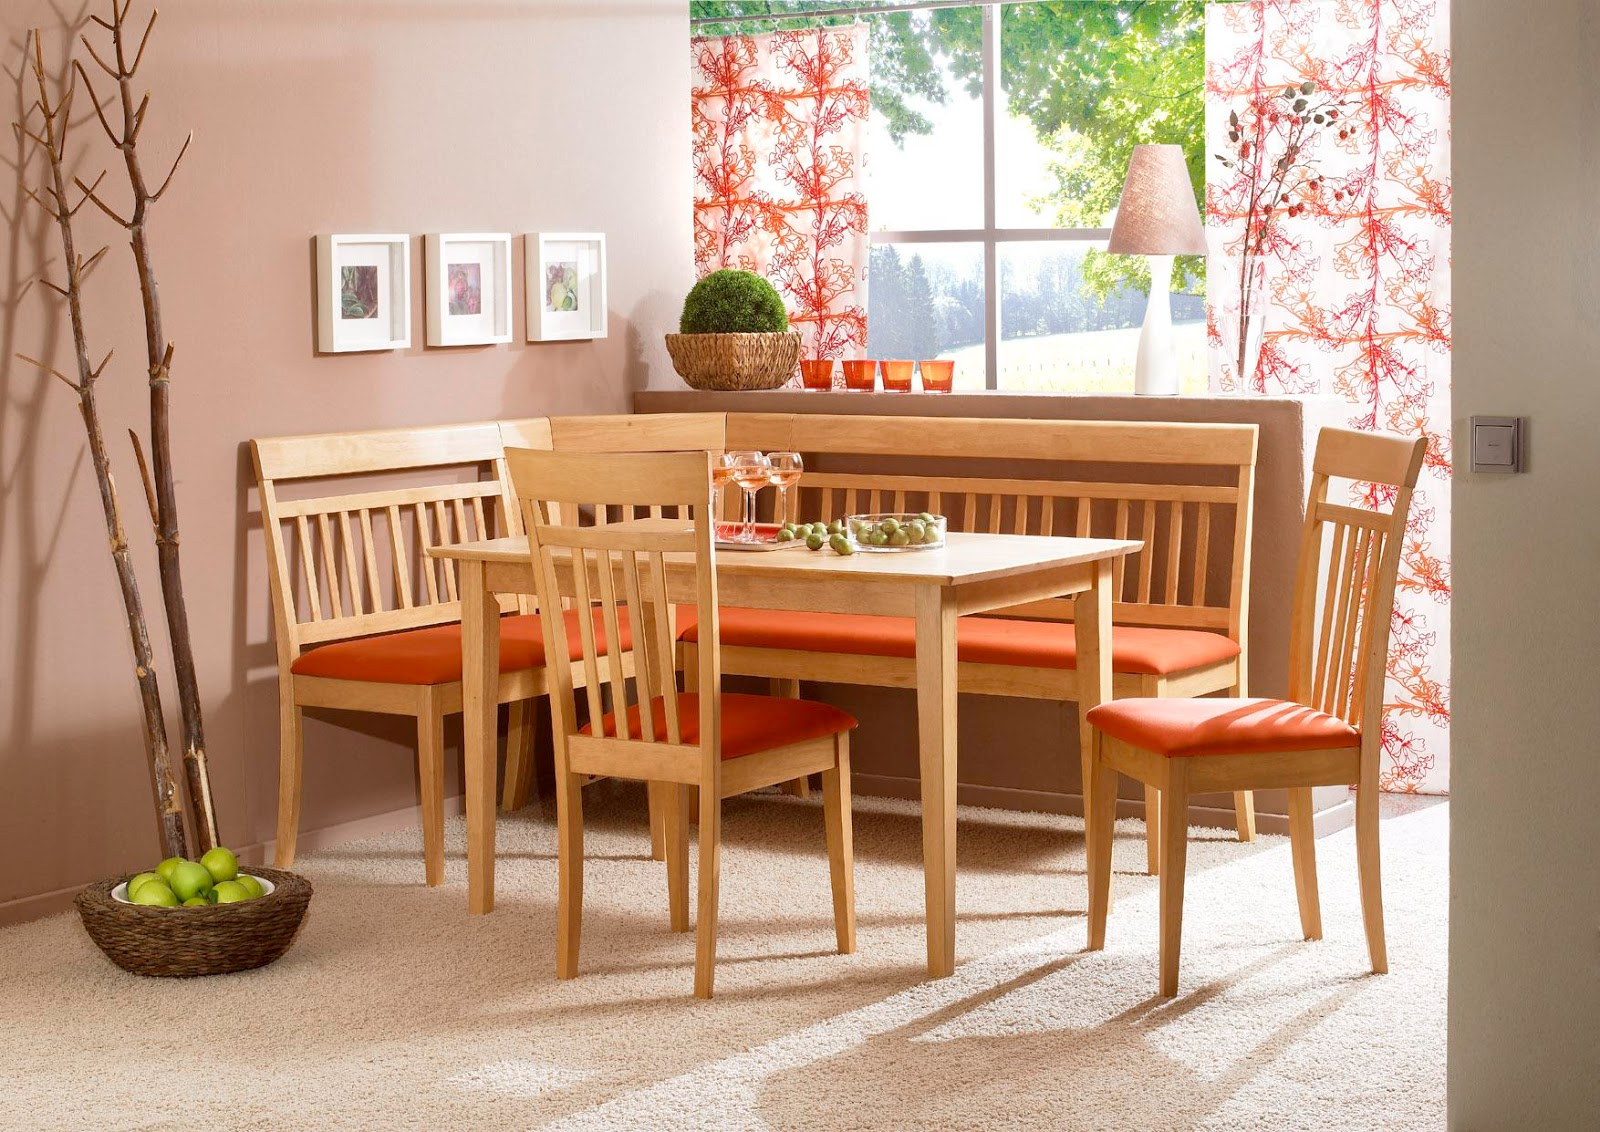 Dining Room Furniture (View 8 of 10)